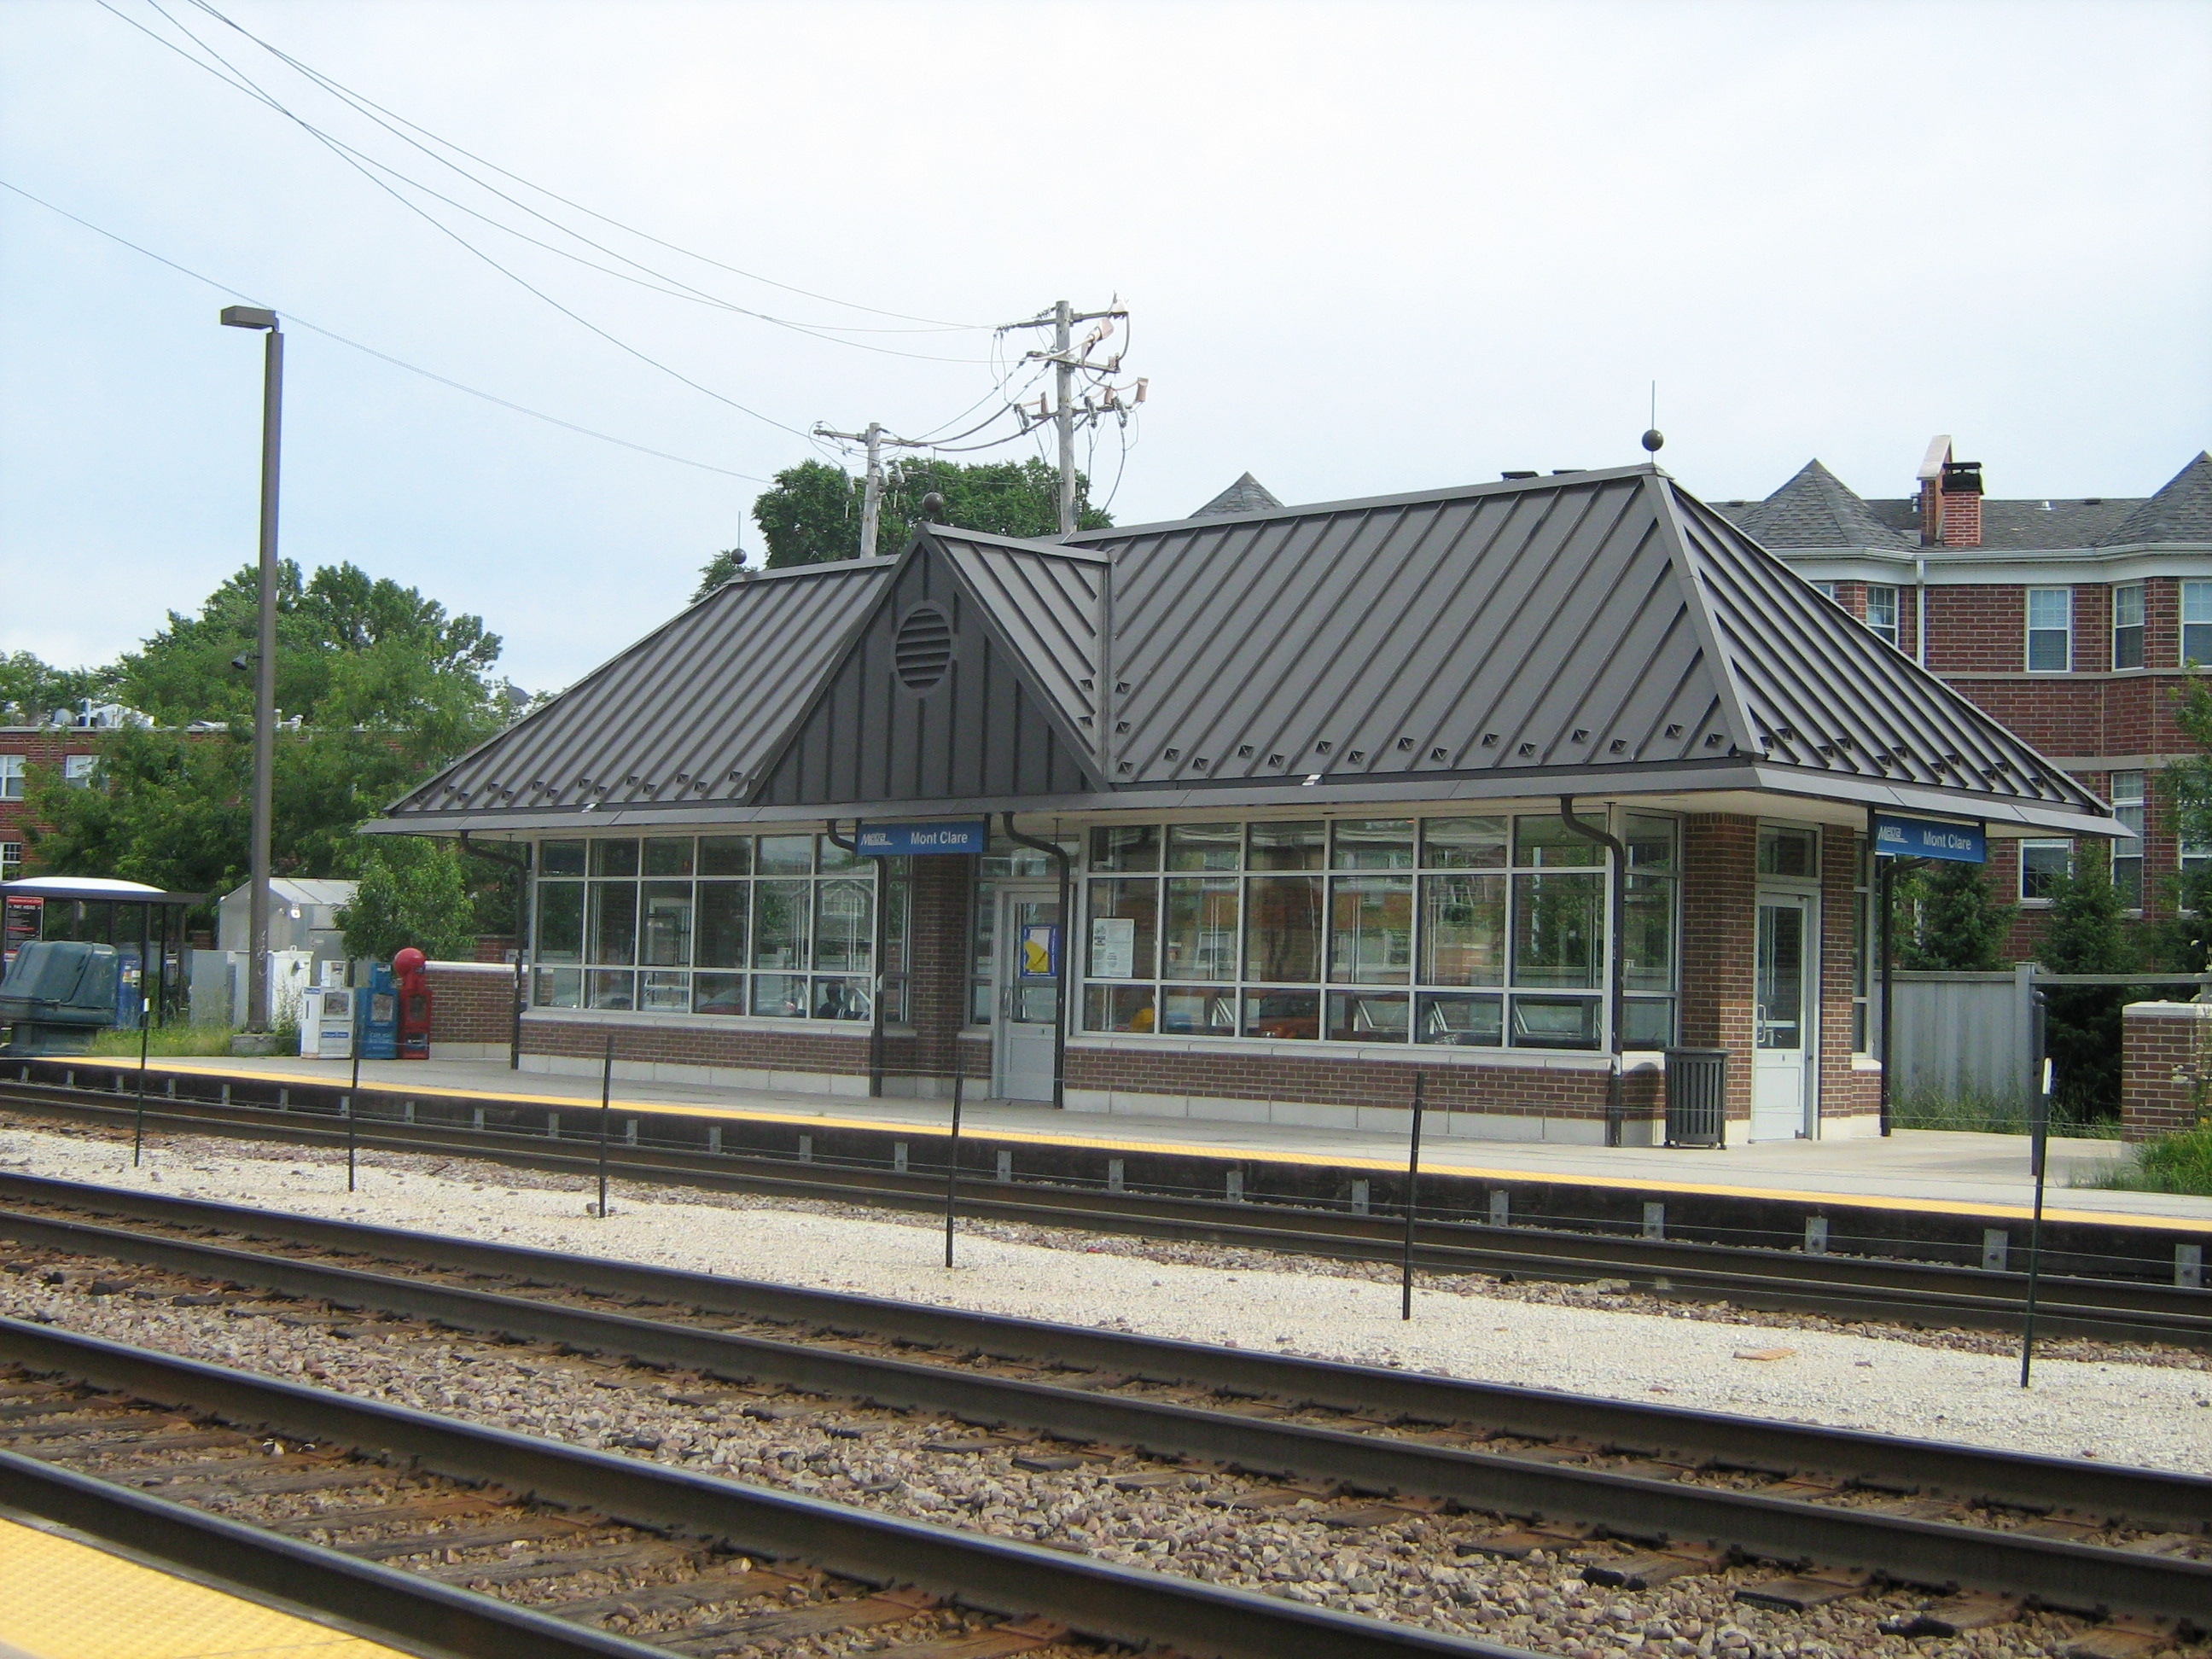 Mont Clare Metra station located near Grand Avenue and Sayre Avenue.